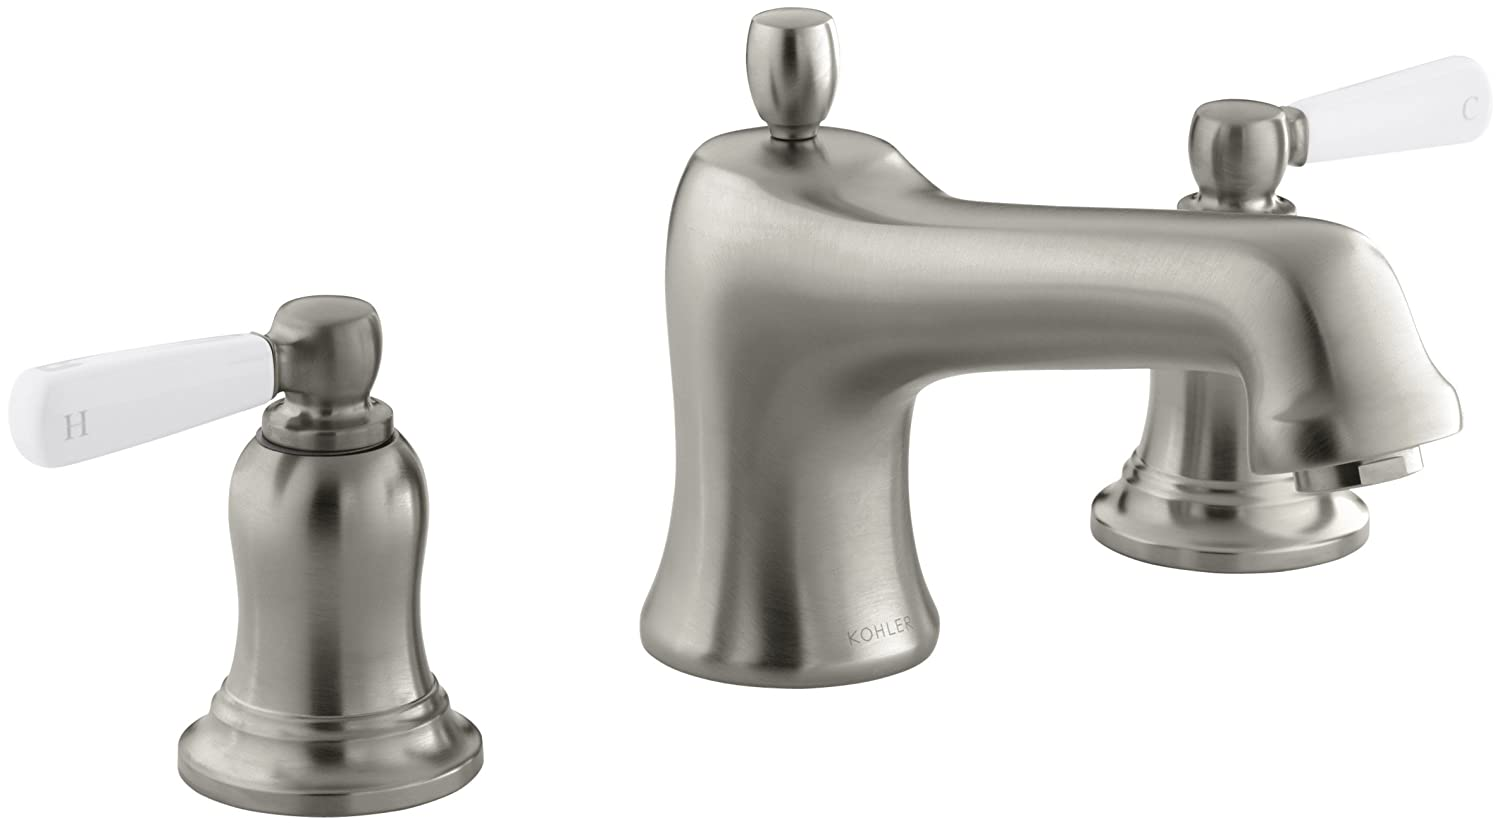 KOHLER K-T10592-4P-CP Bancroft Deck-Mount Bath Faucet Trim, Polished ...